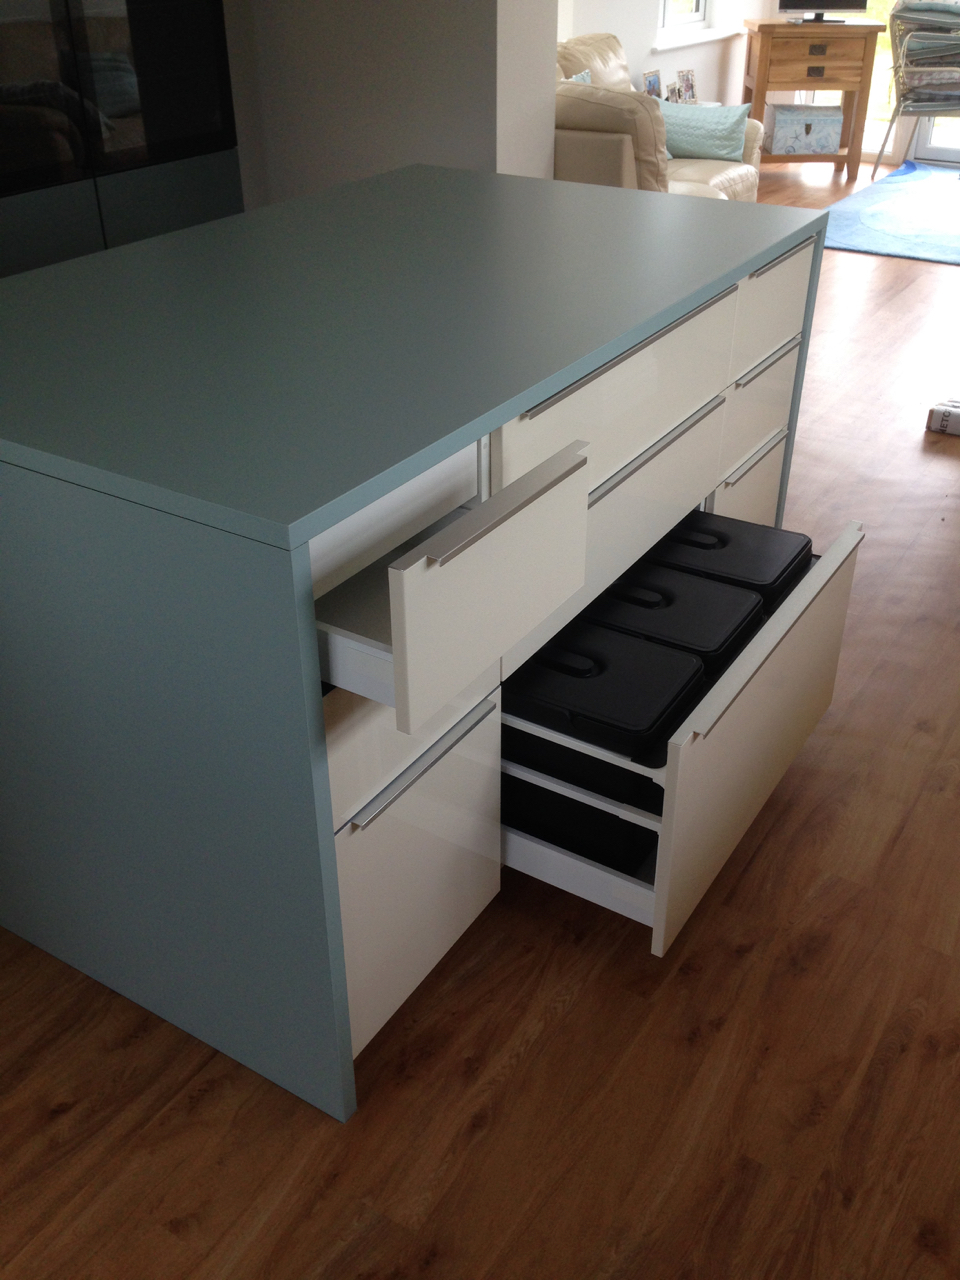 Ikea kitchen island with metod units